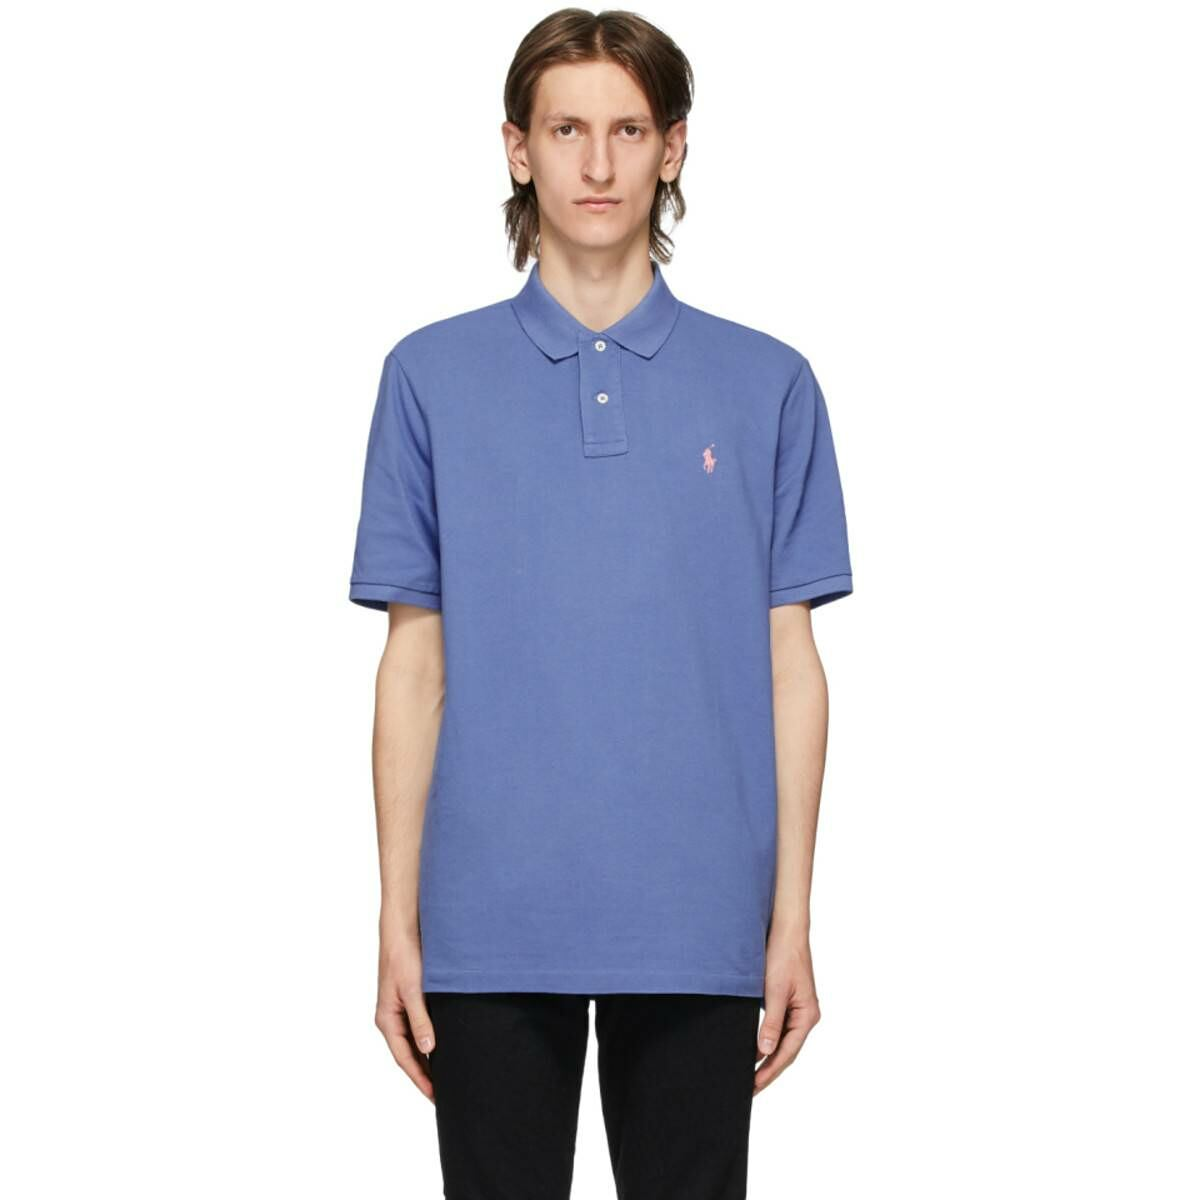 Polo Ralph Lauren Blue Mesh Iconic Polo Ssense USA MEN Men FASHION Mens POLOSHIRTS